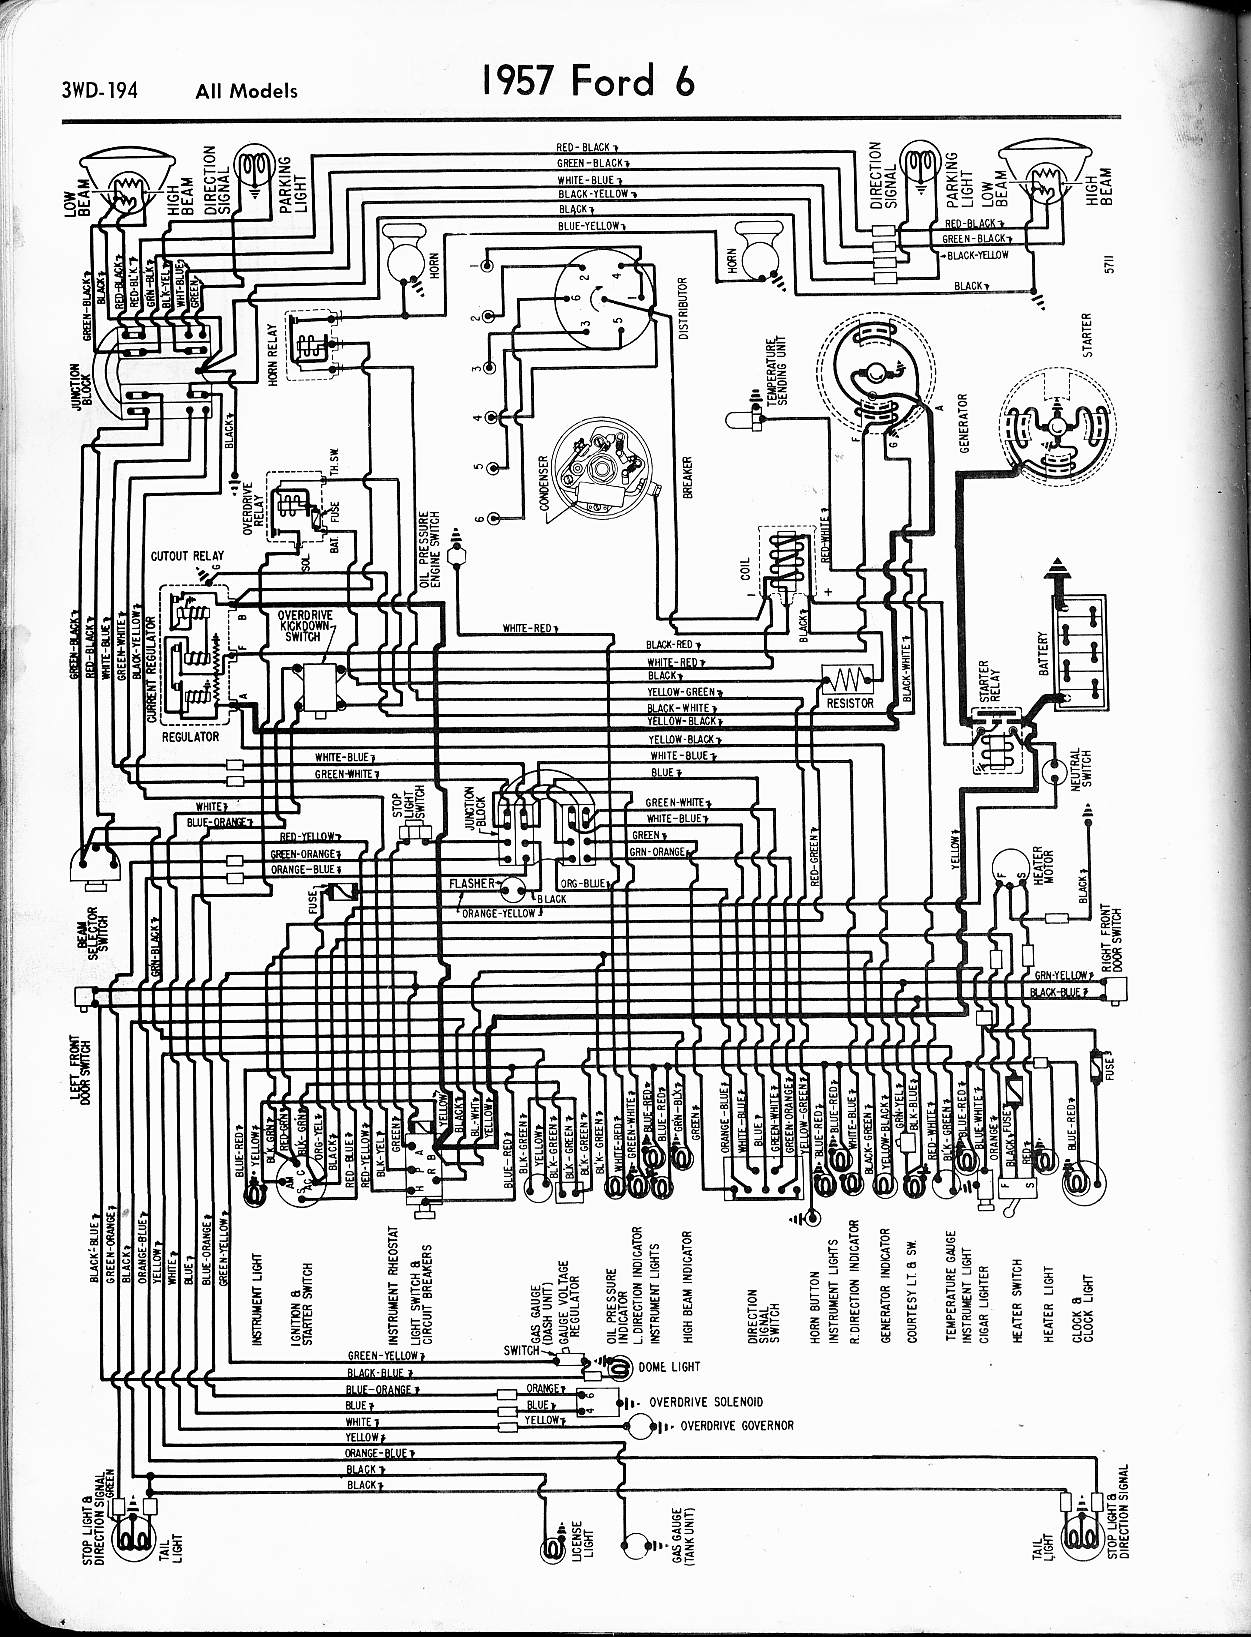 Wiring Diagram 1979 Mgb Limited Edition Guide And Troubleshooting Ford Inertia Switch 77 Thunderbird Todays Rh 13 1813weddingbarn Com